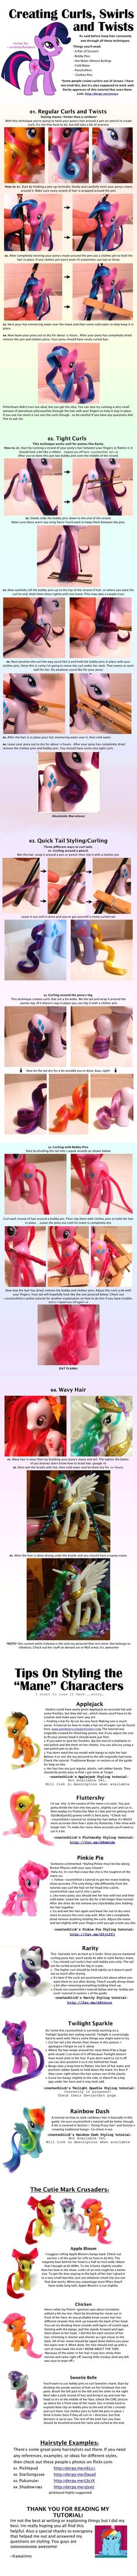 Kawaiimo's Pony Hair Styling Guide 2/2 by ~kawaiimo on deviantART